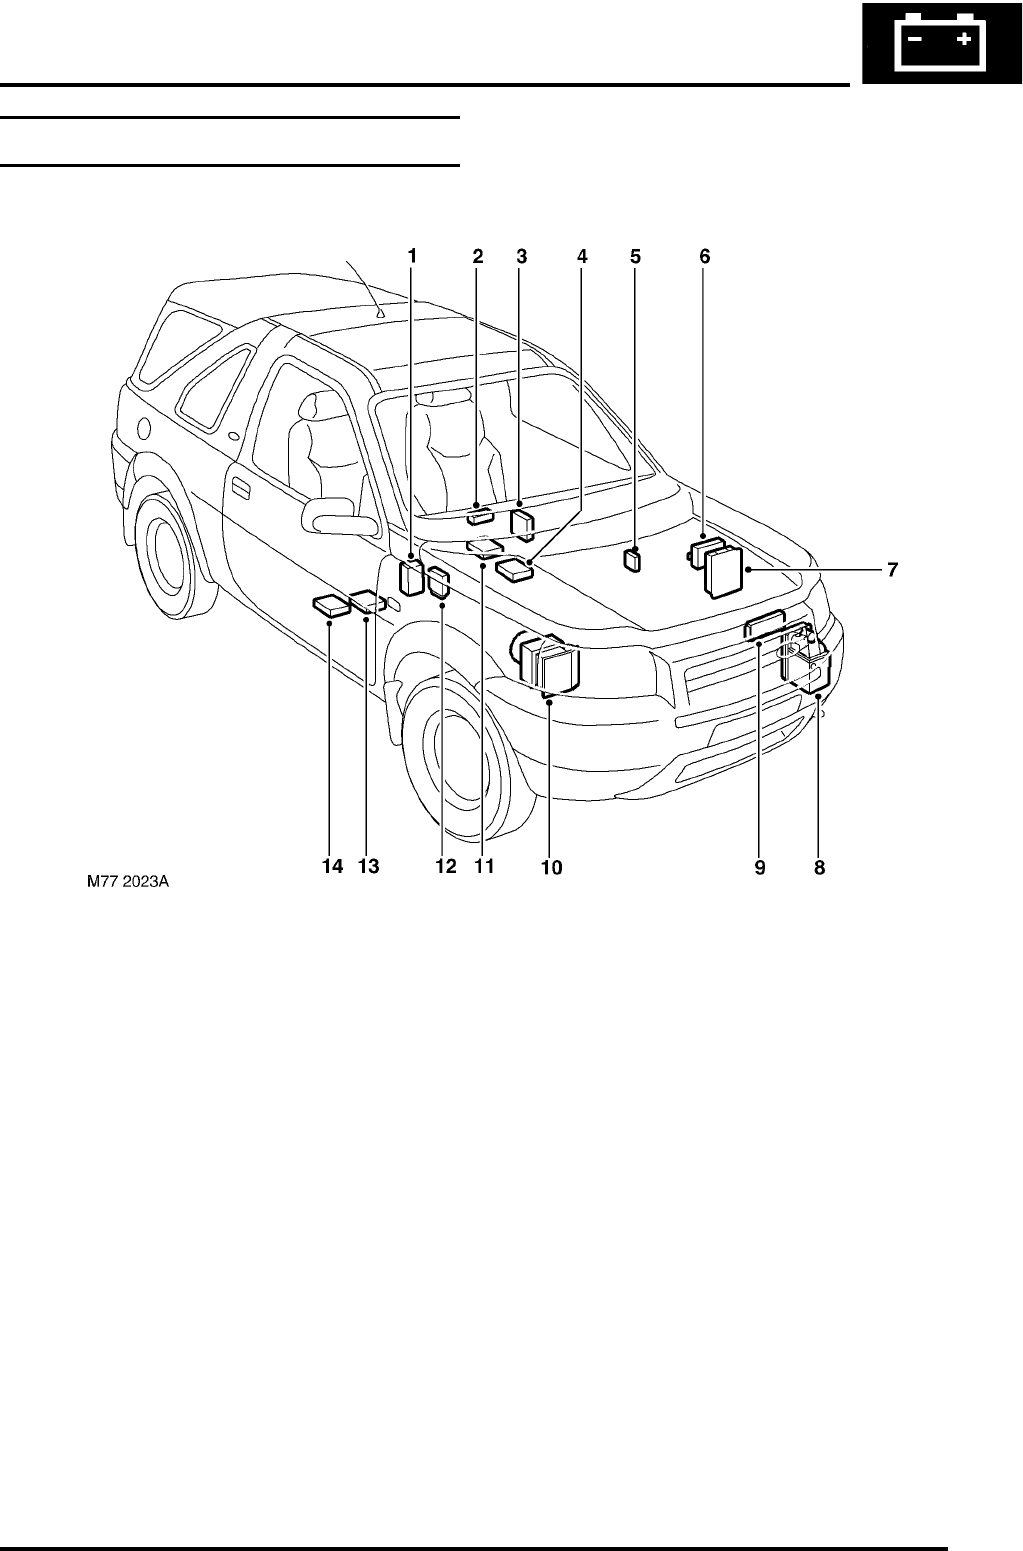 bg118 land rover freelander workshop manual pdf freelander wiring diagram pdf at mr168.co